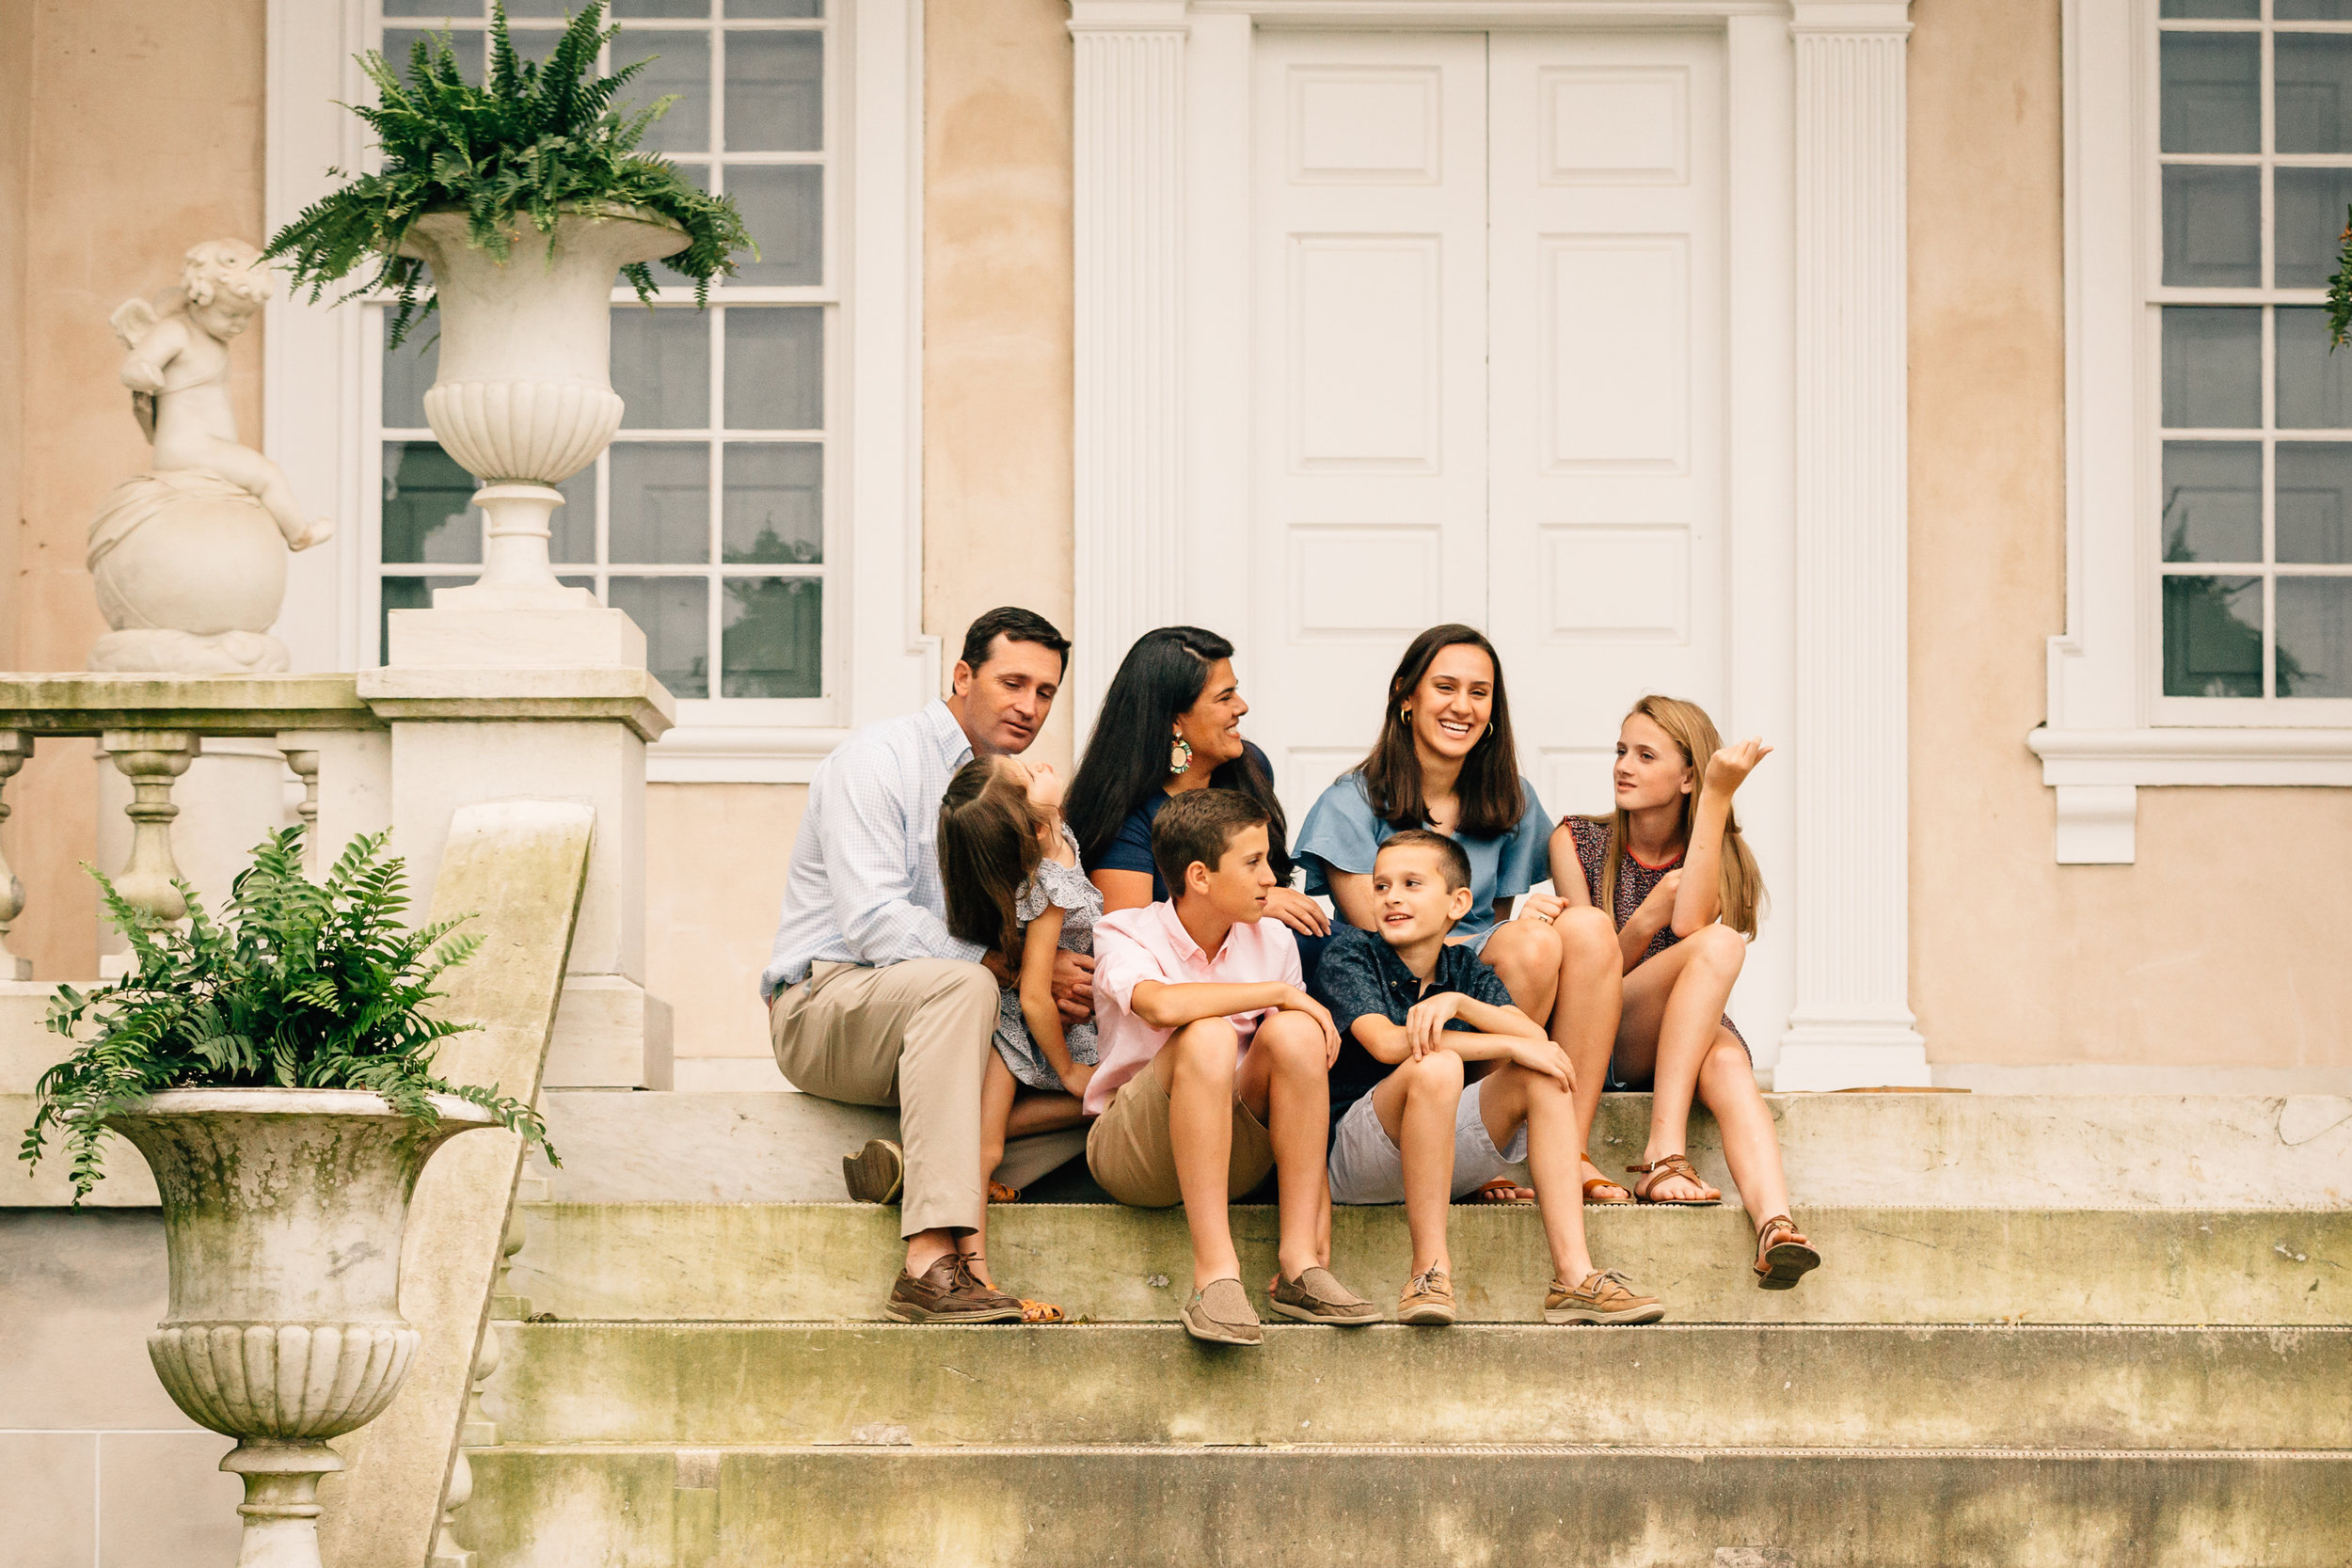 smithberger_lifestyle_family_session_hampton_mansion-5535.jpg